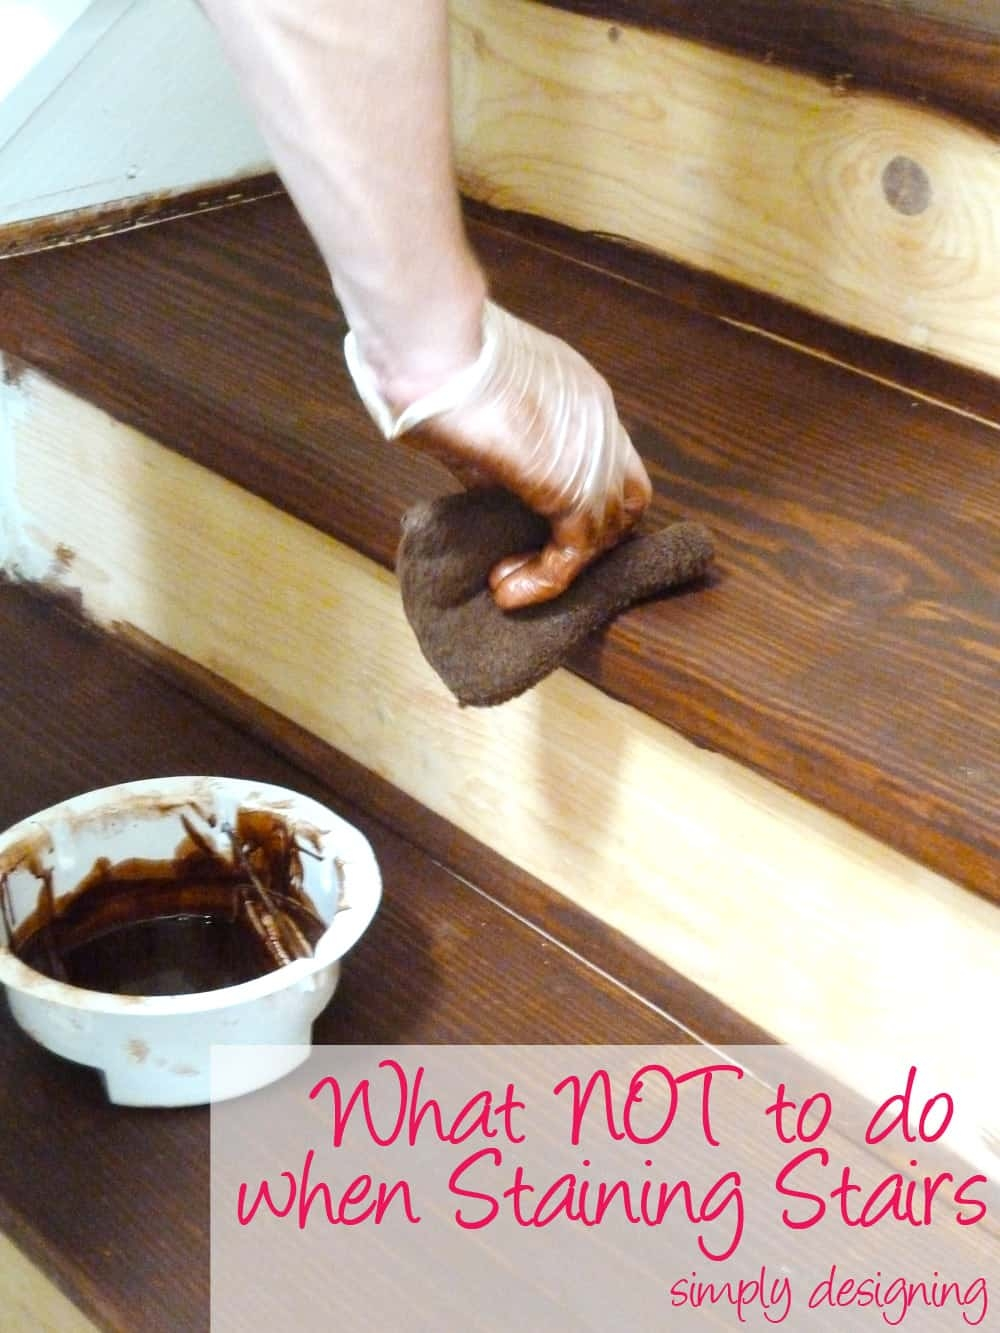 Staircase Make Over Part 2 Mistakes To Avoid And How To Do It Right   Best Wood For Indoor Stairs   Hardwood   Stair Parts   Stair Case   Glass   Red Oak